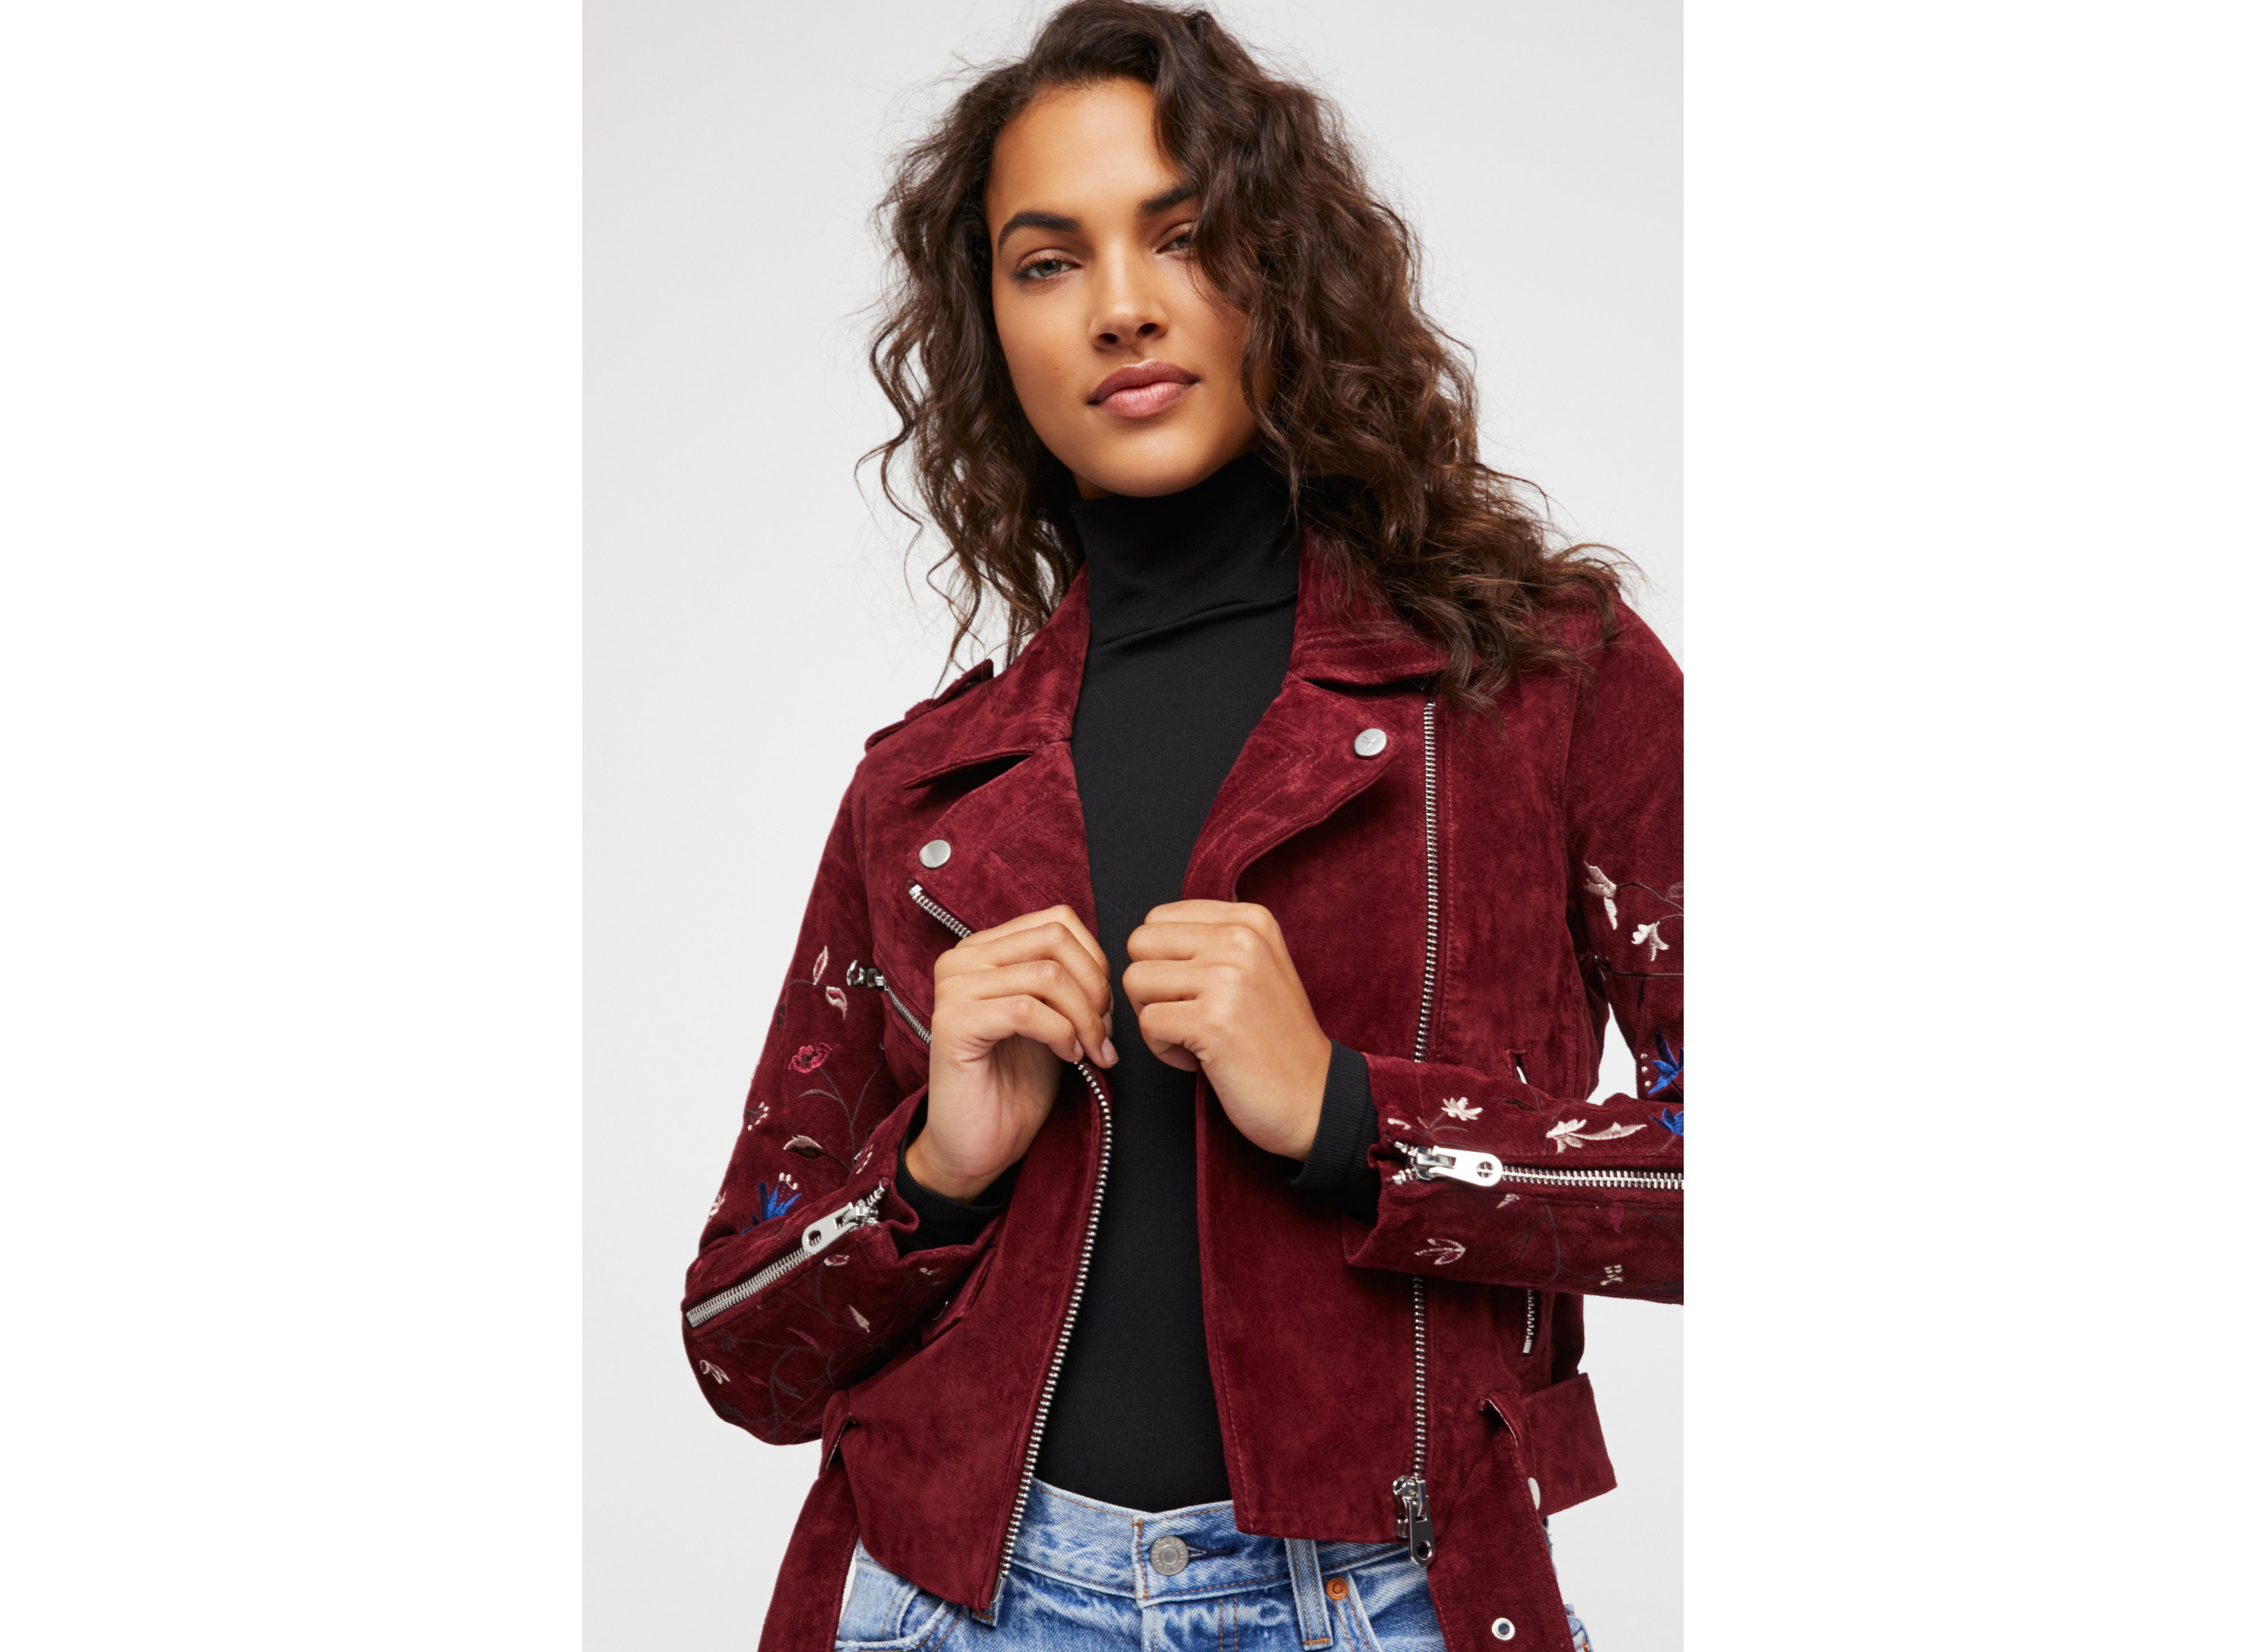 Travel Shop person clothing jacket fashion model cellphone red standing fashion coat outerwear posing blazer leather jacket lady model sleeve pattern dressed